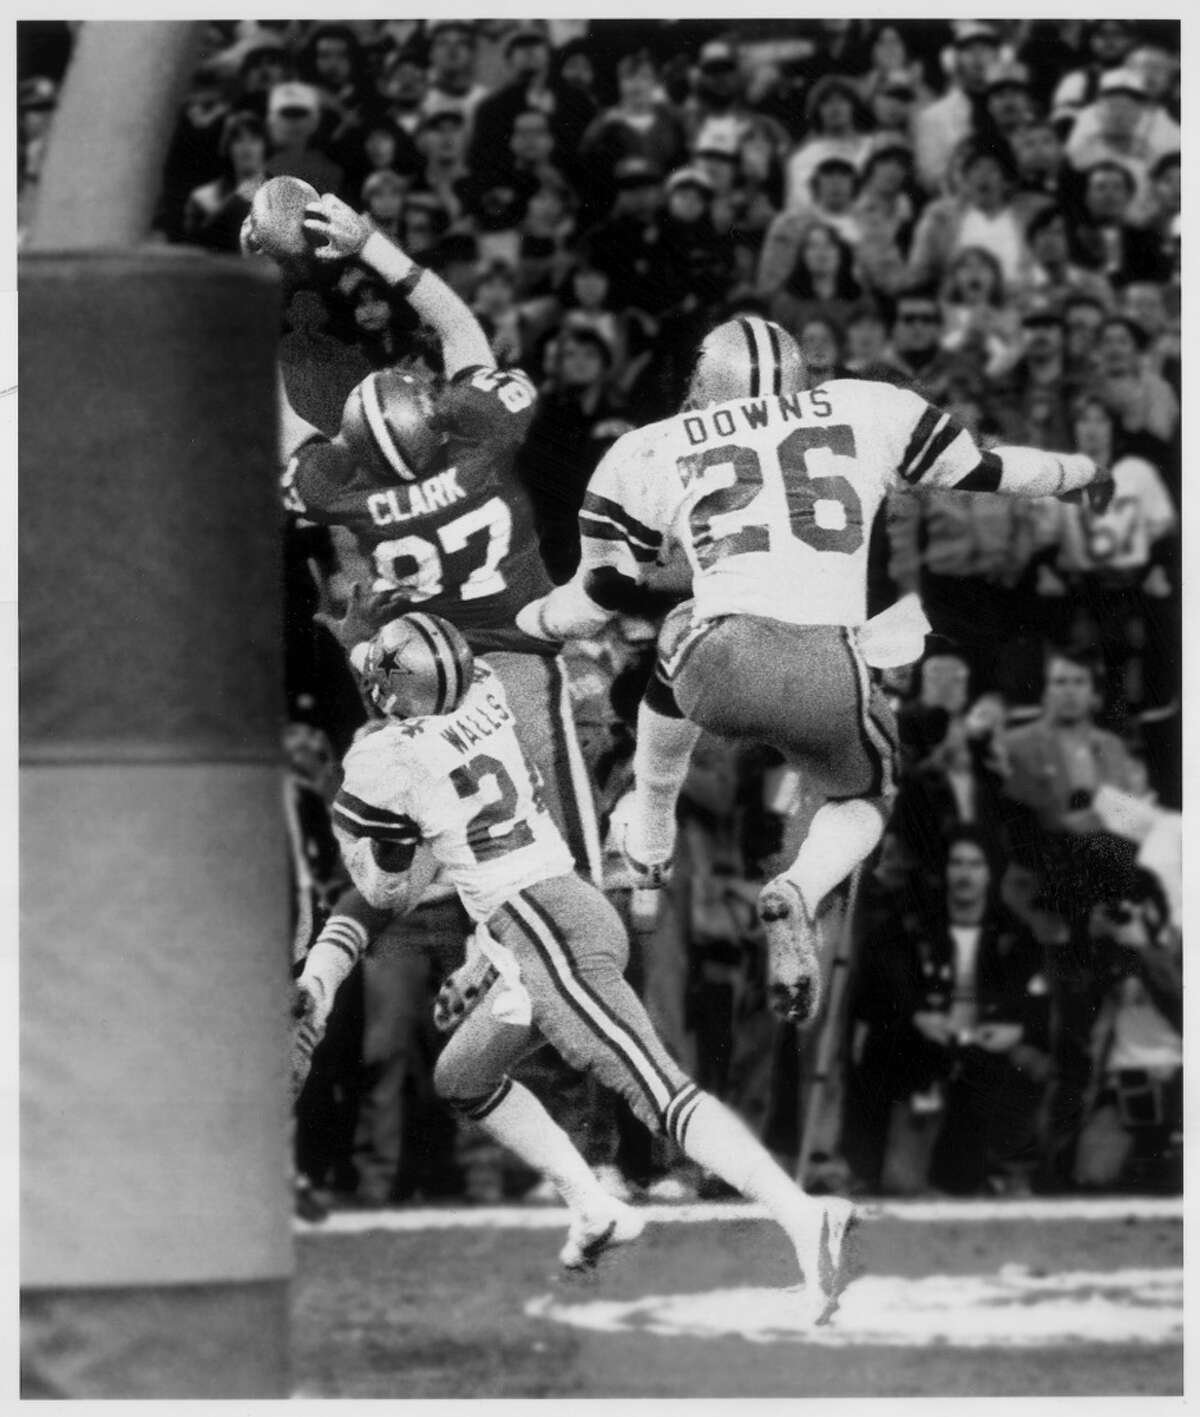 NFC, 1981: 49ERS 28, COWBOYS 27 This game launched one dynasty and derailed another.